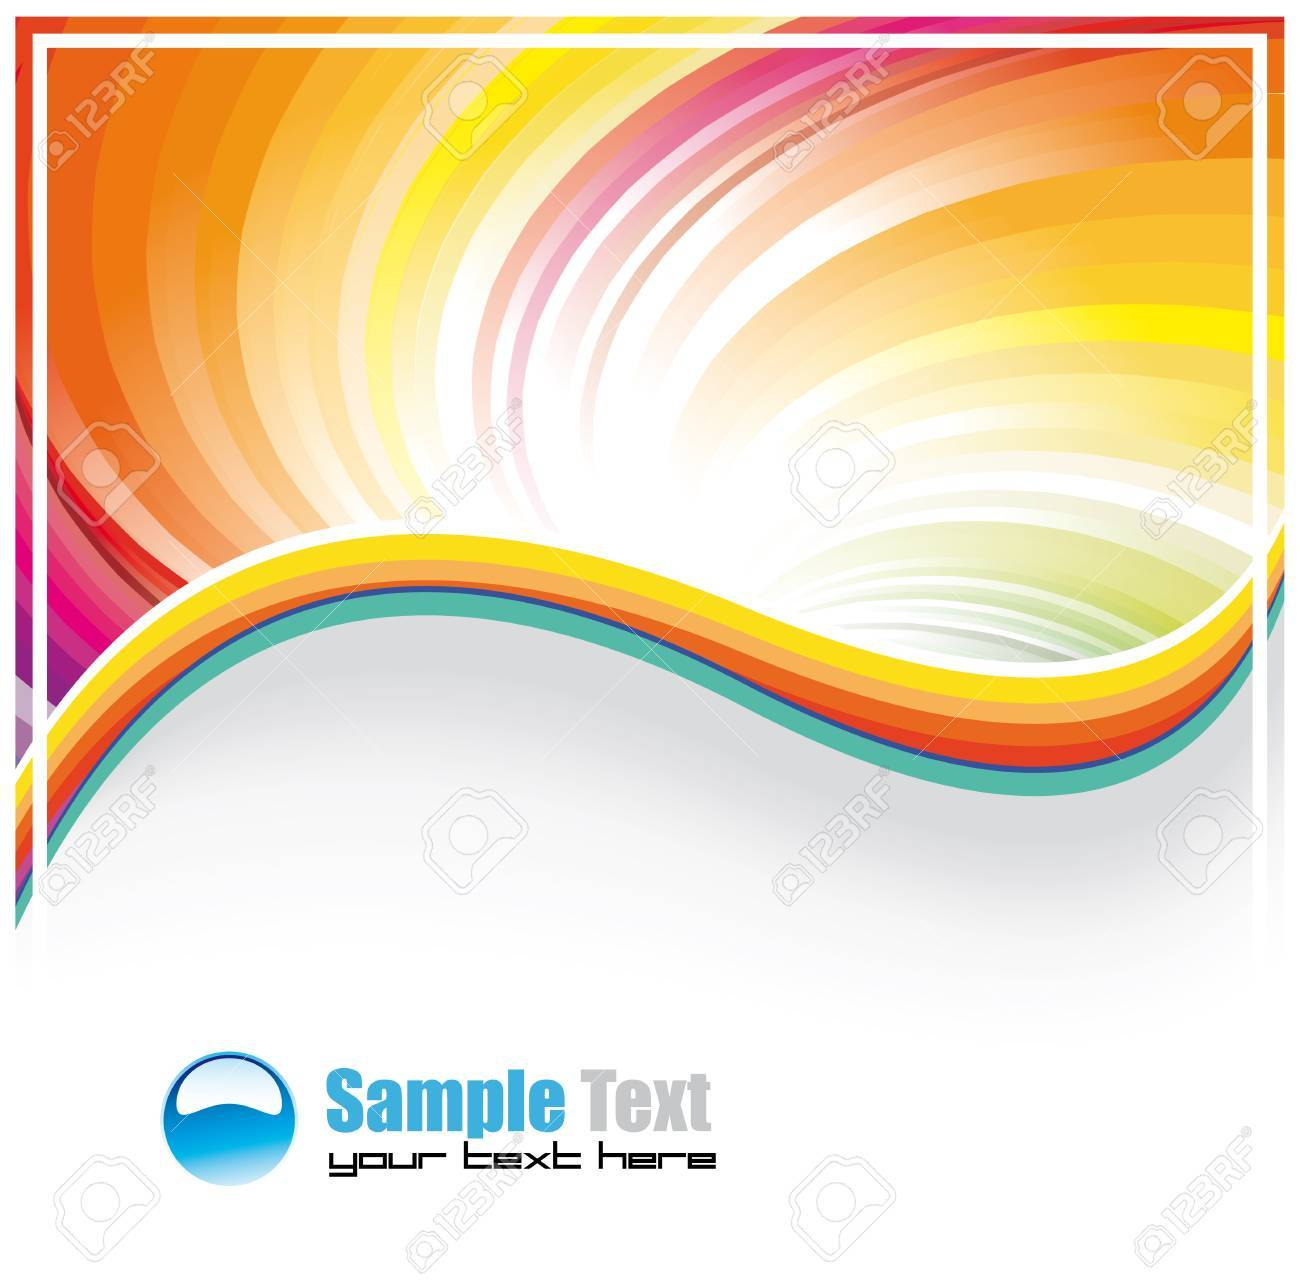 abstract rainbow background for business brochure or cover royalty abstract rainbow background for business brochure or cover stock vector 5523672